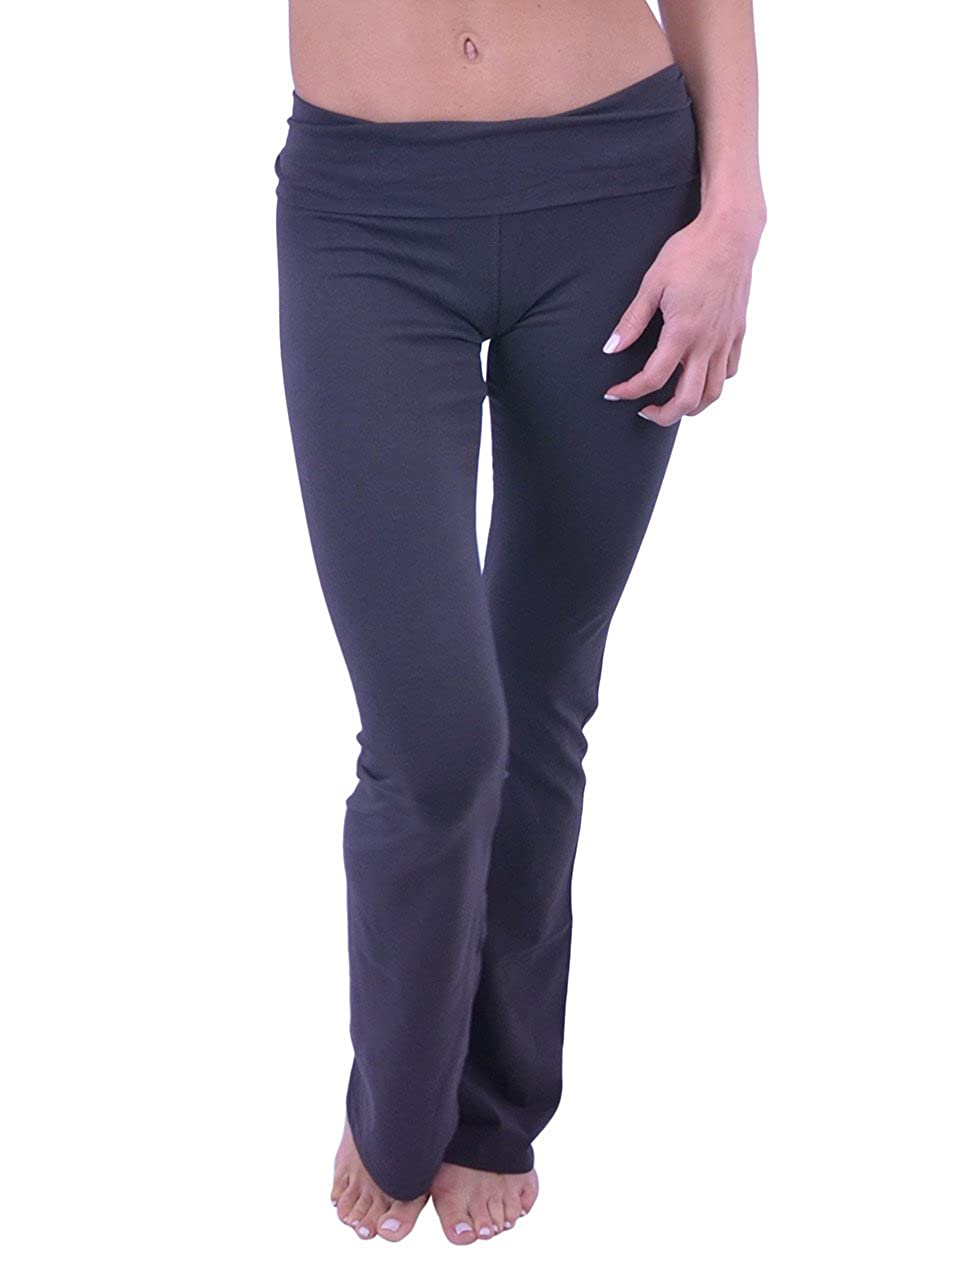 Vivian's Fashions Yoga Pants - Extra Long (Misses and Misses Plus Sizes) PP8150T